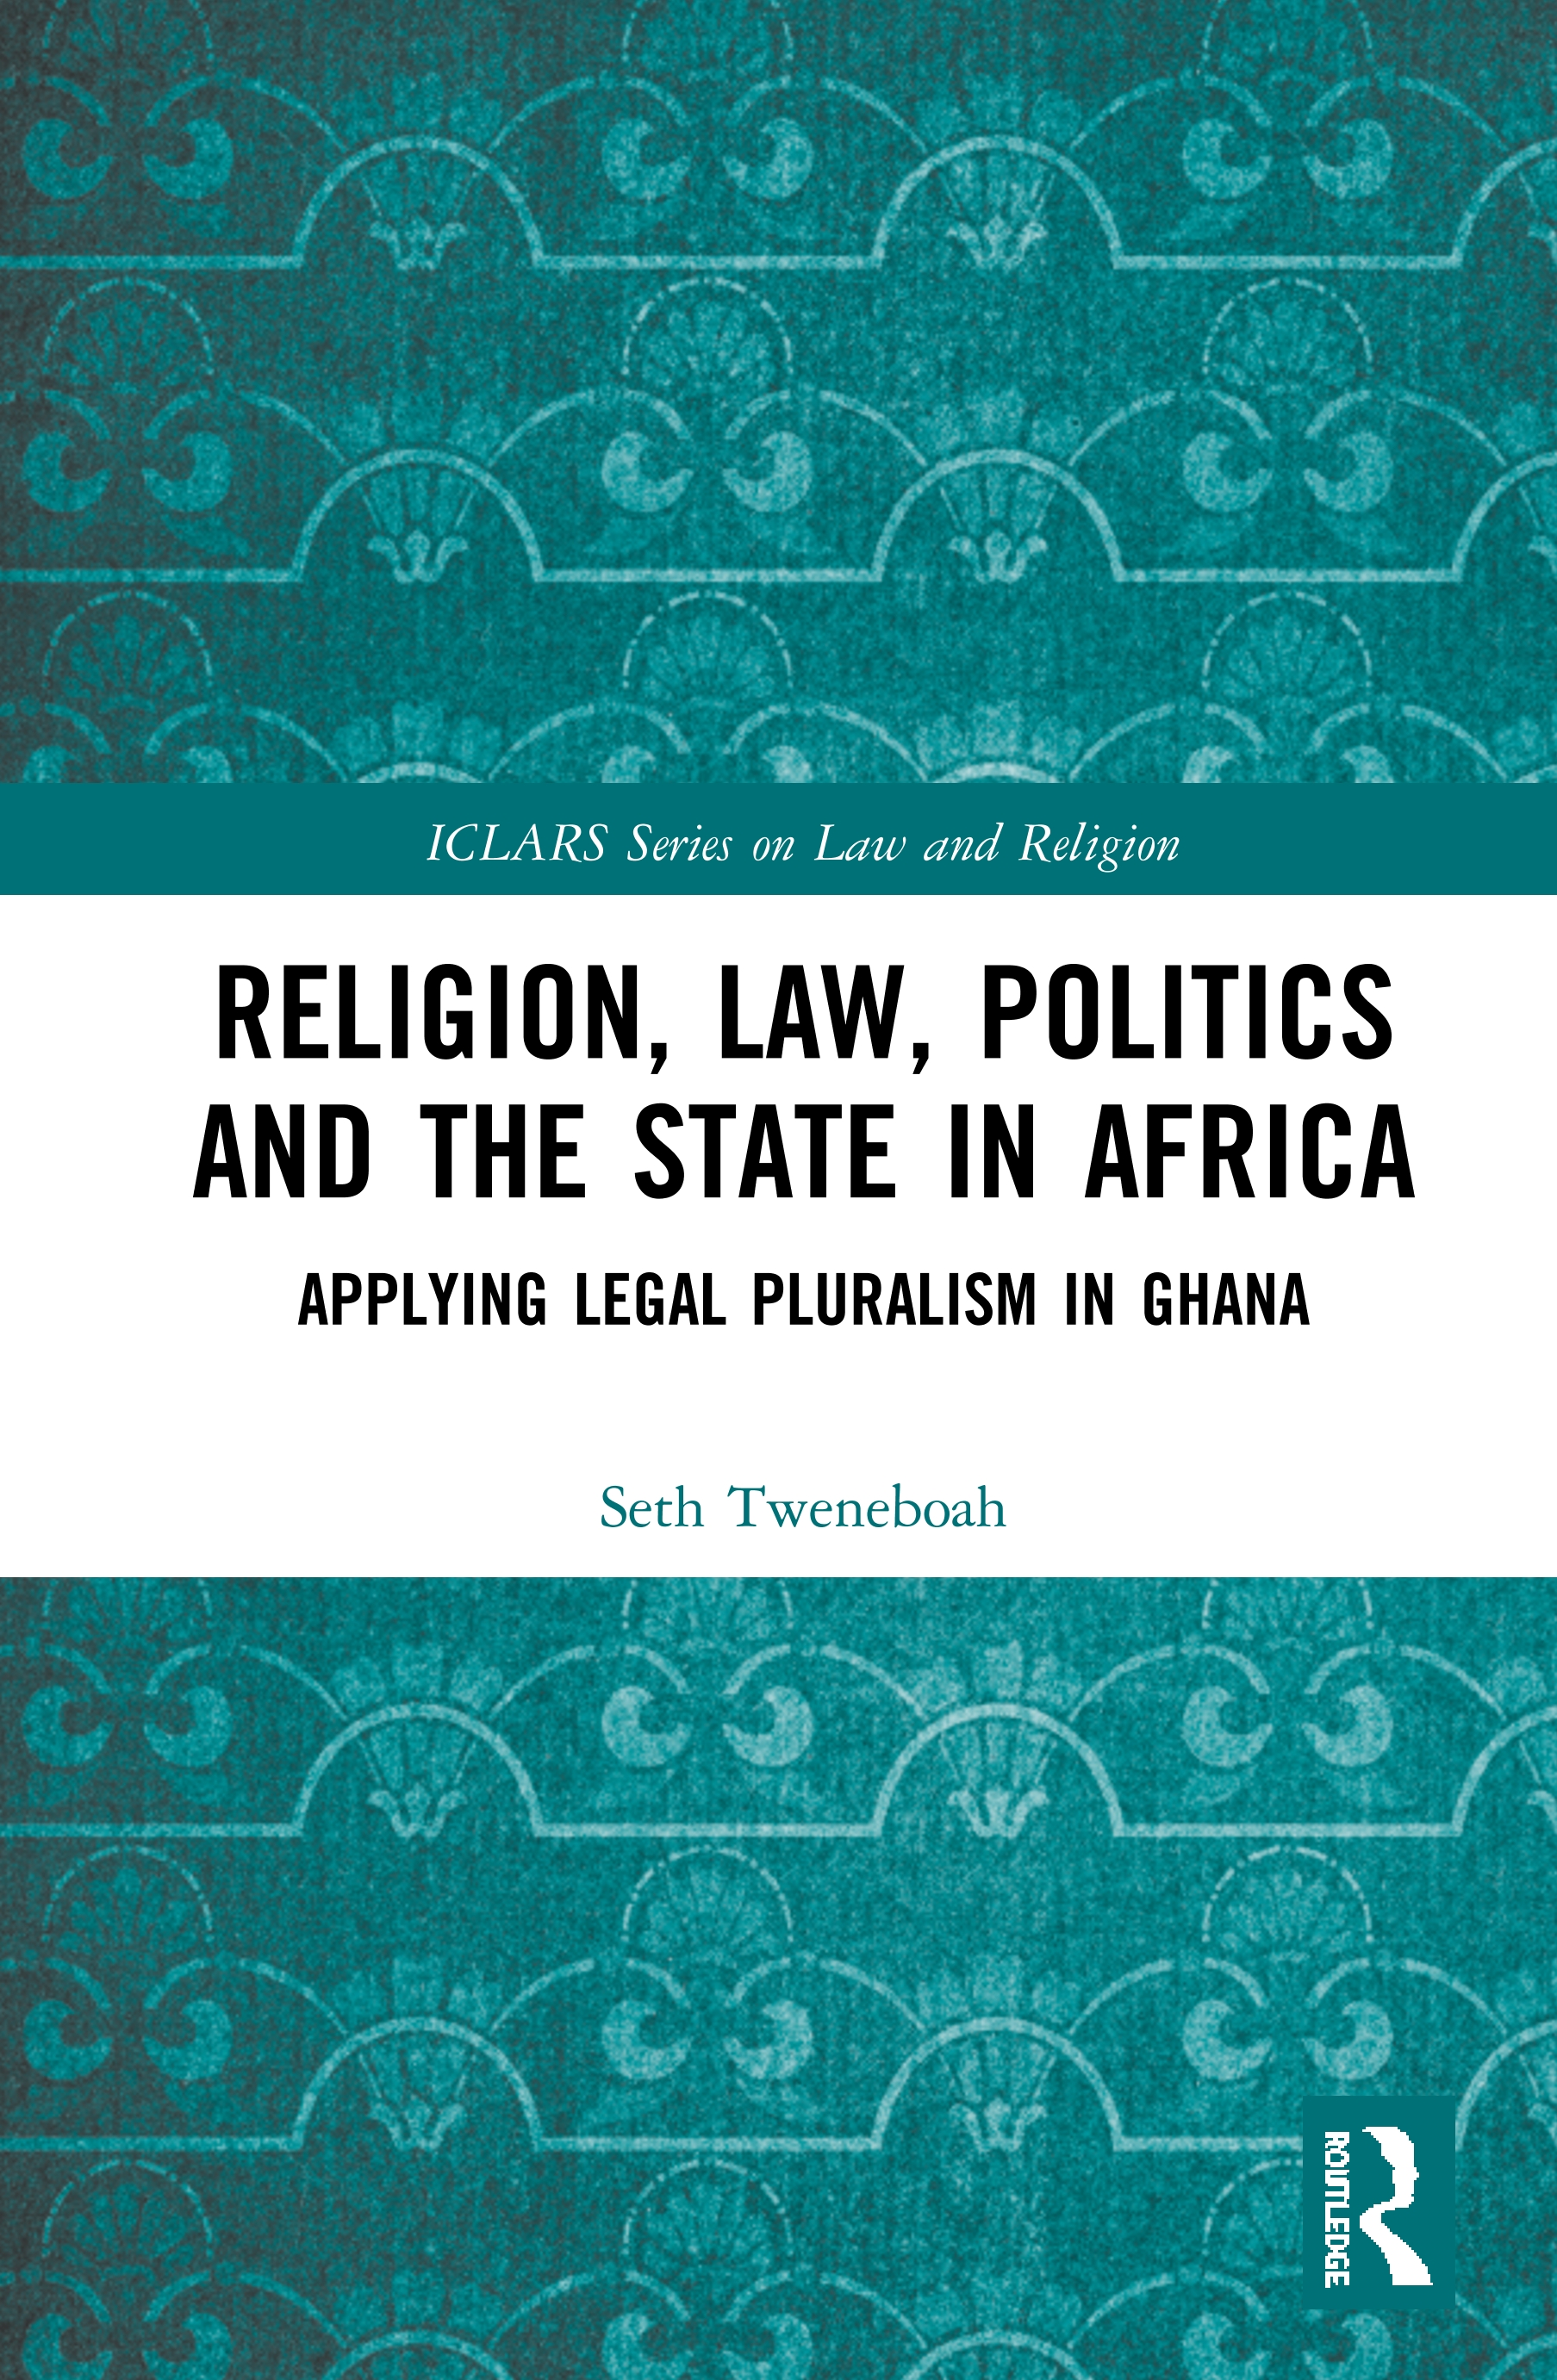 Religion, Law, Politics and the State in Africa: Applying Legal Pluralism in Ghana book cover